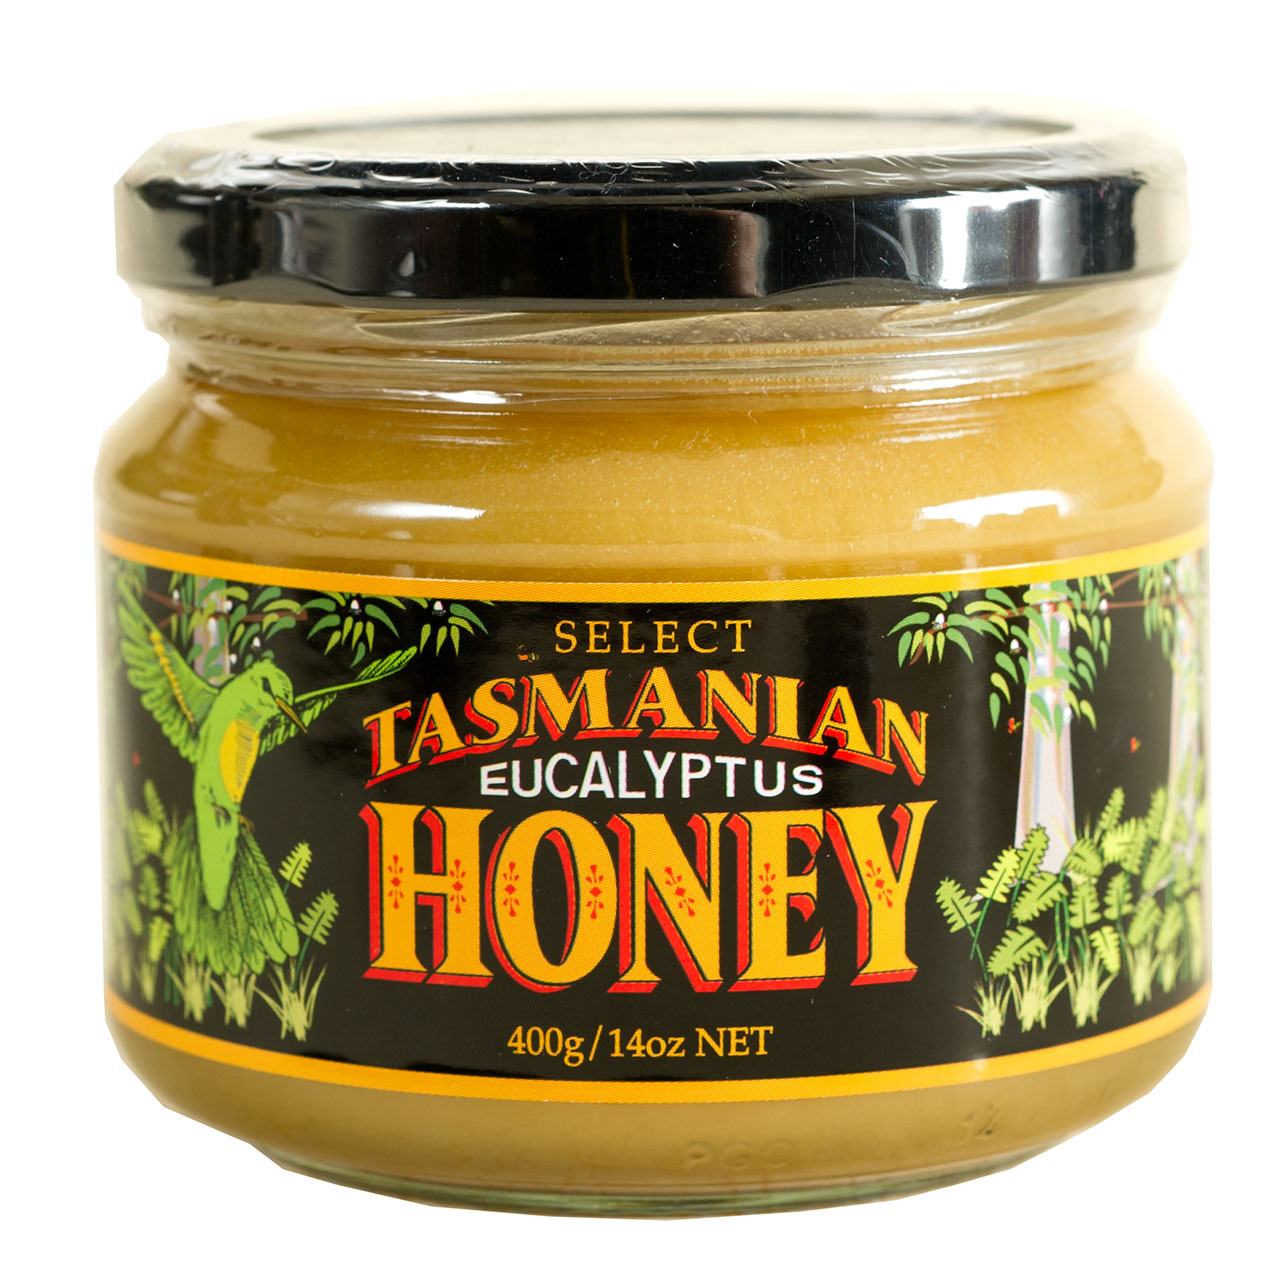 Tasmanian Eucalyptus Honey